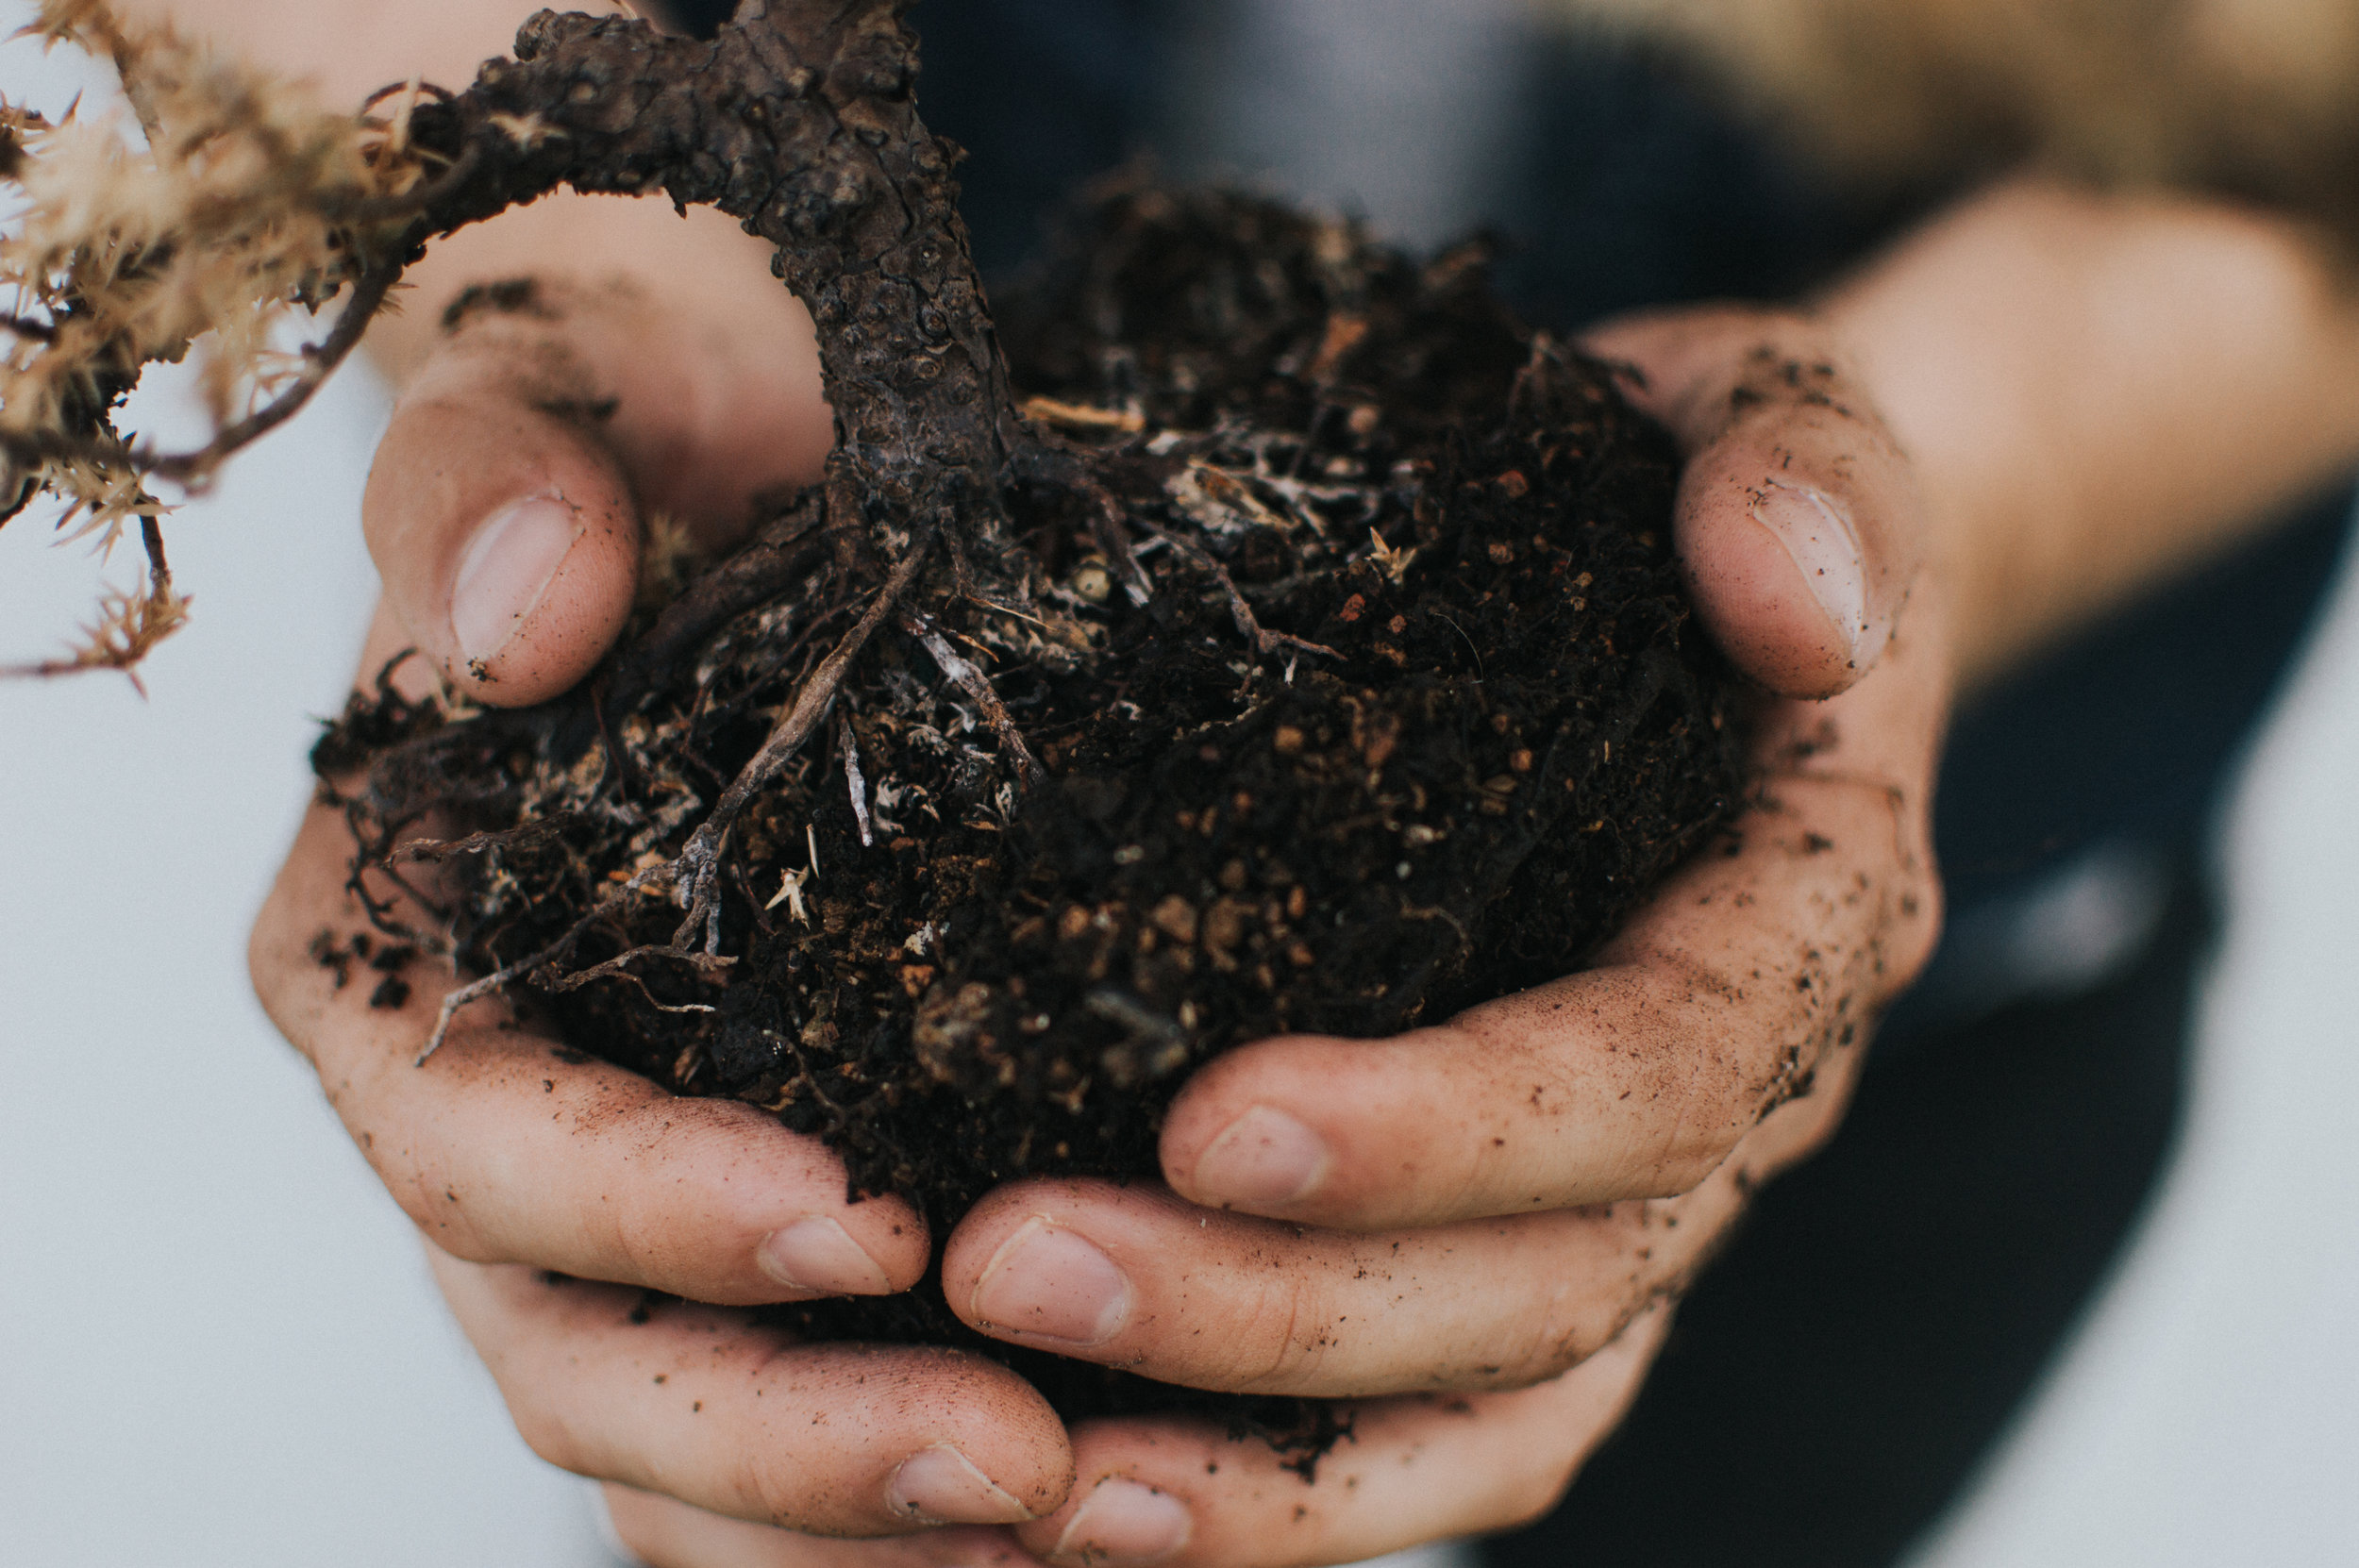 Soil is home to many things, including minerals, decomposing organic matter, bugs, worms and microorganisms. It makes soil one of the richest ecosystems on the planet.